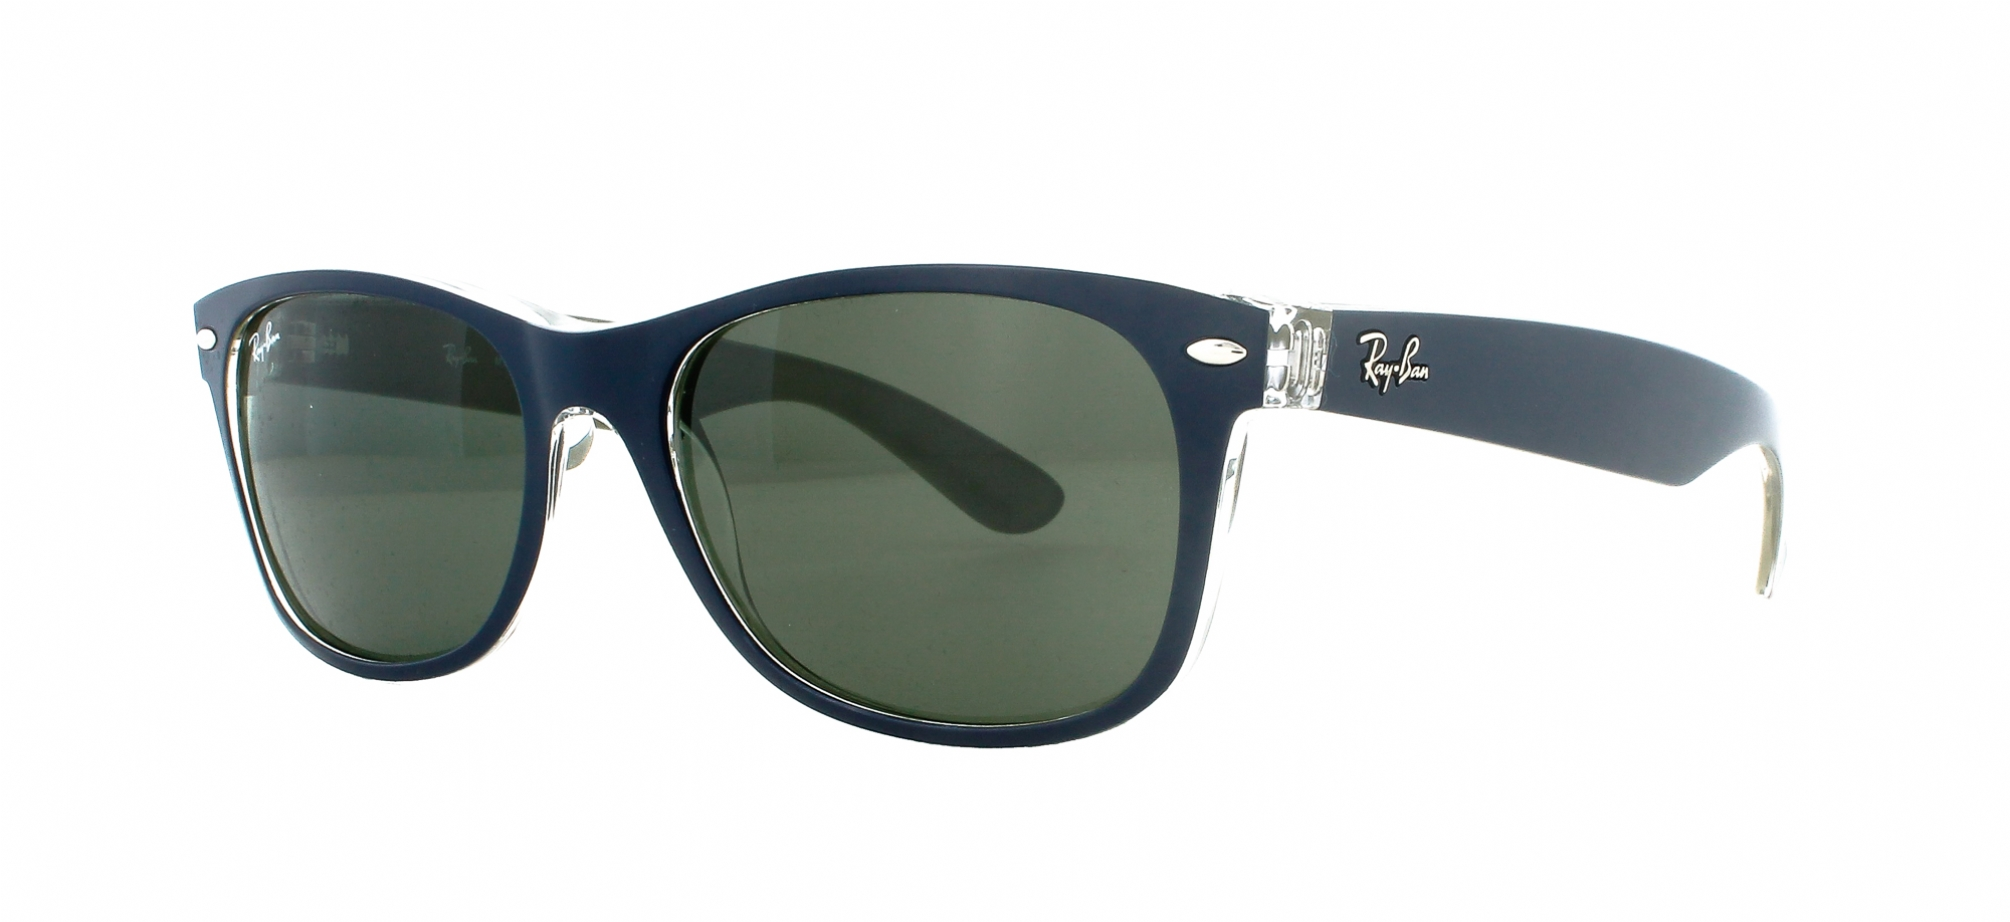 ray ban sunglasses warranty repair